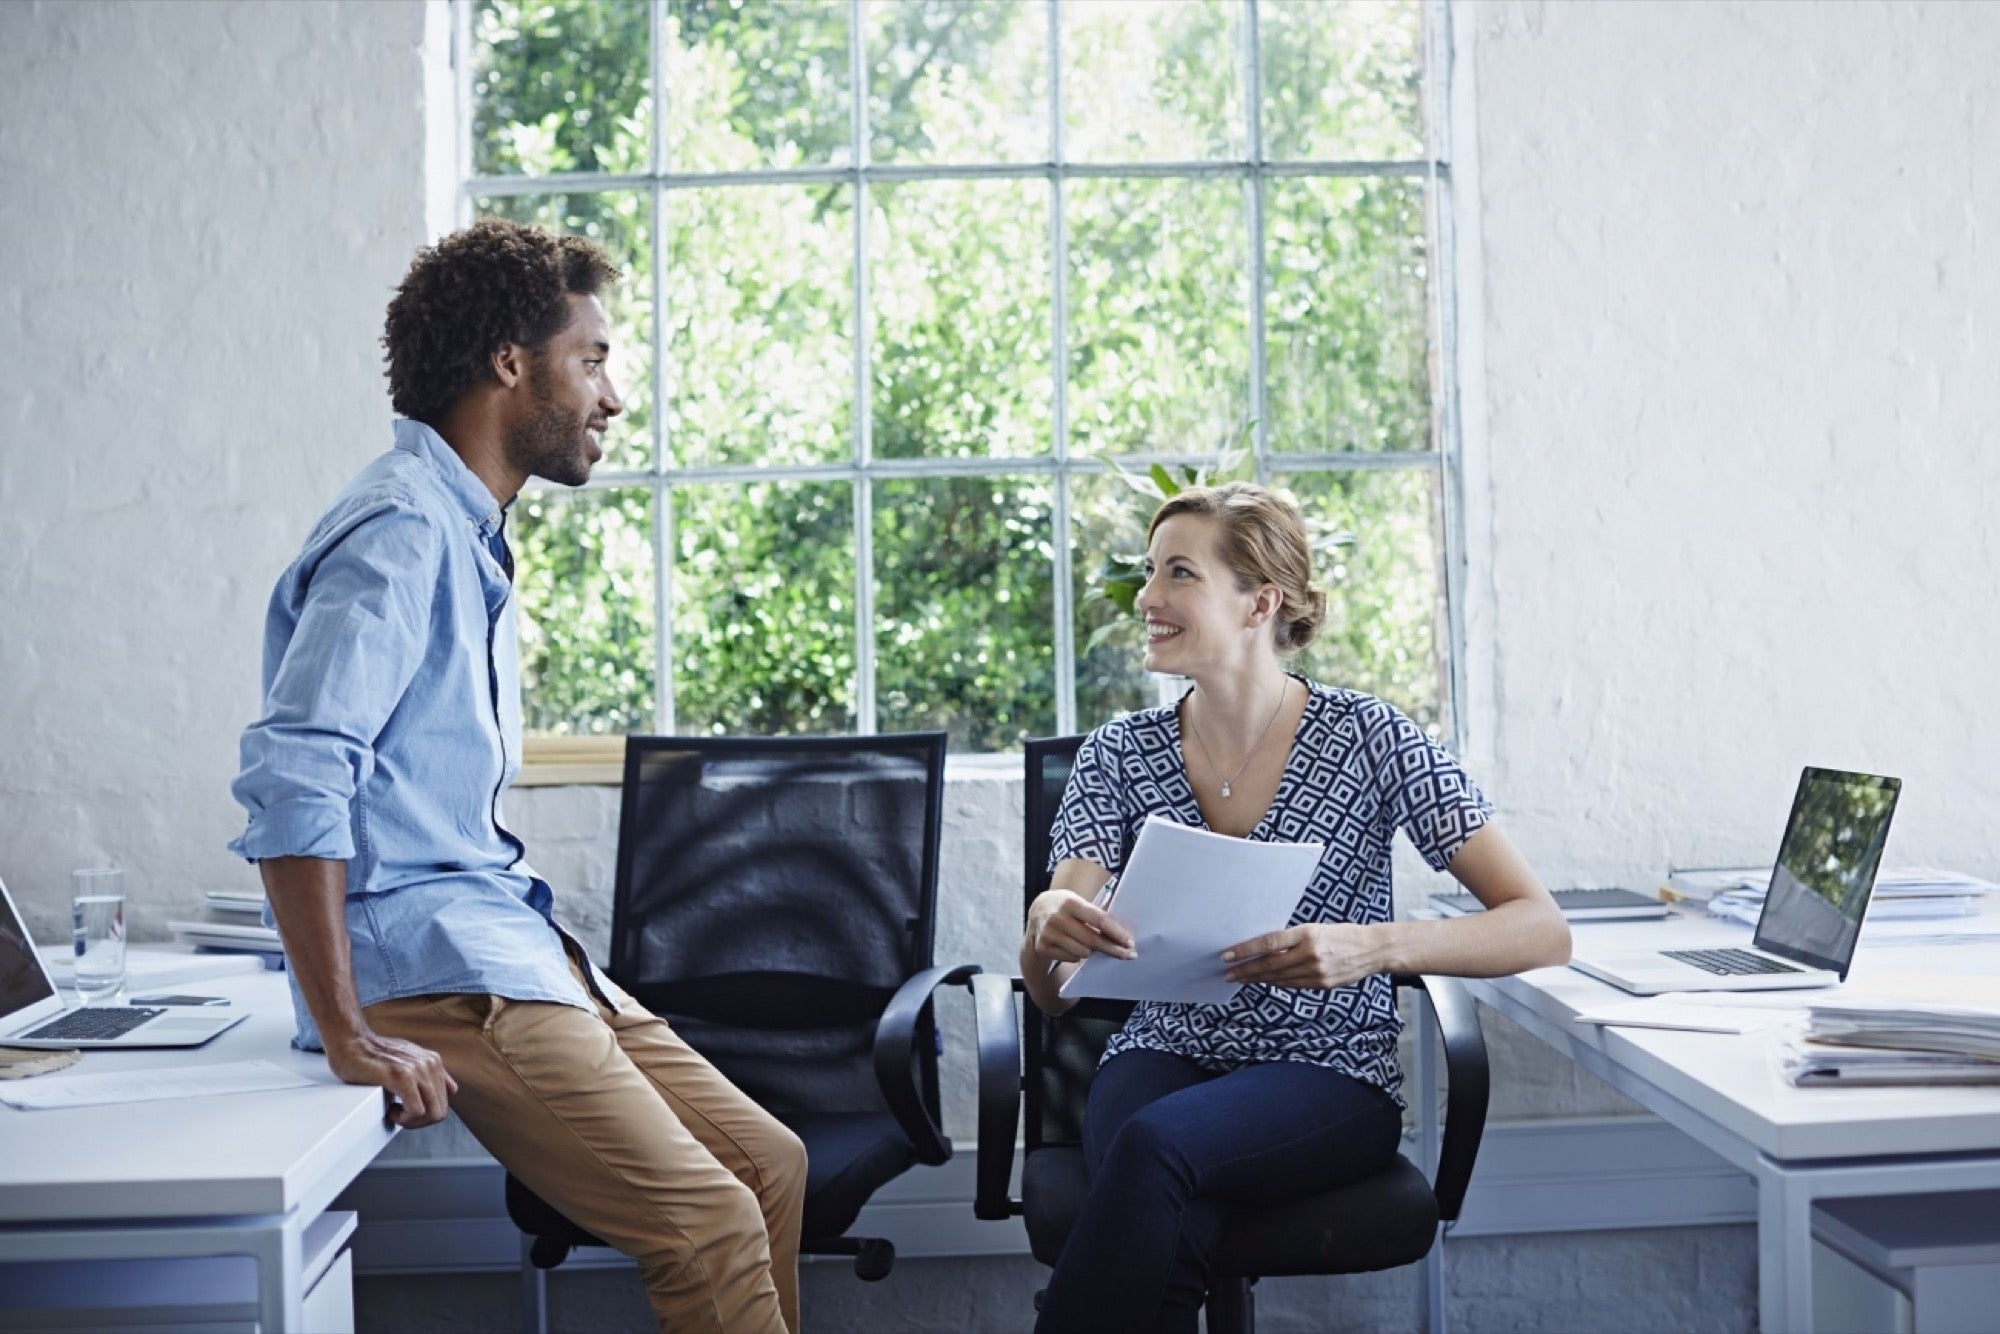 10 Ways to Become a Super-Likable Person